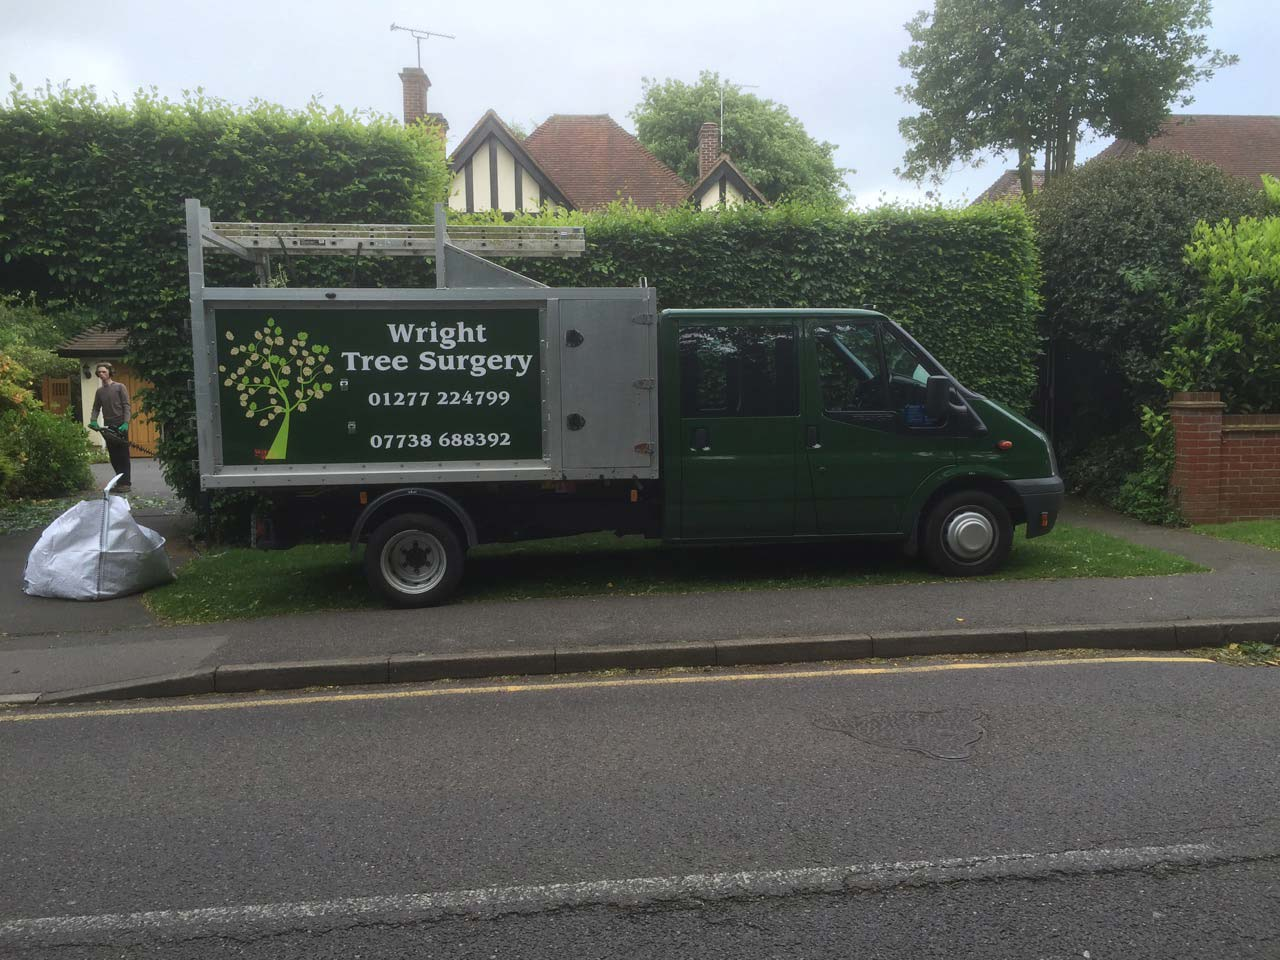 image showing For prompt response and value for money tree surgery in or near Brentwood, Essex